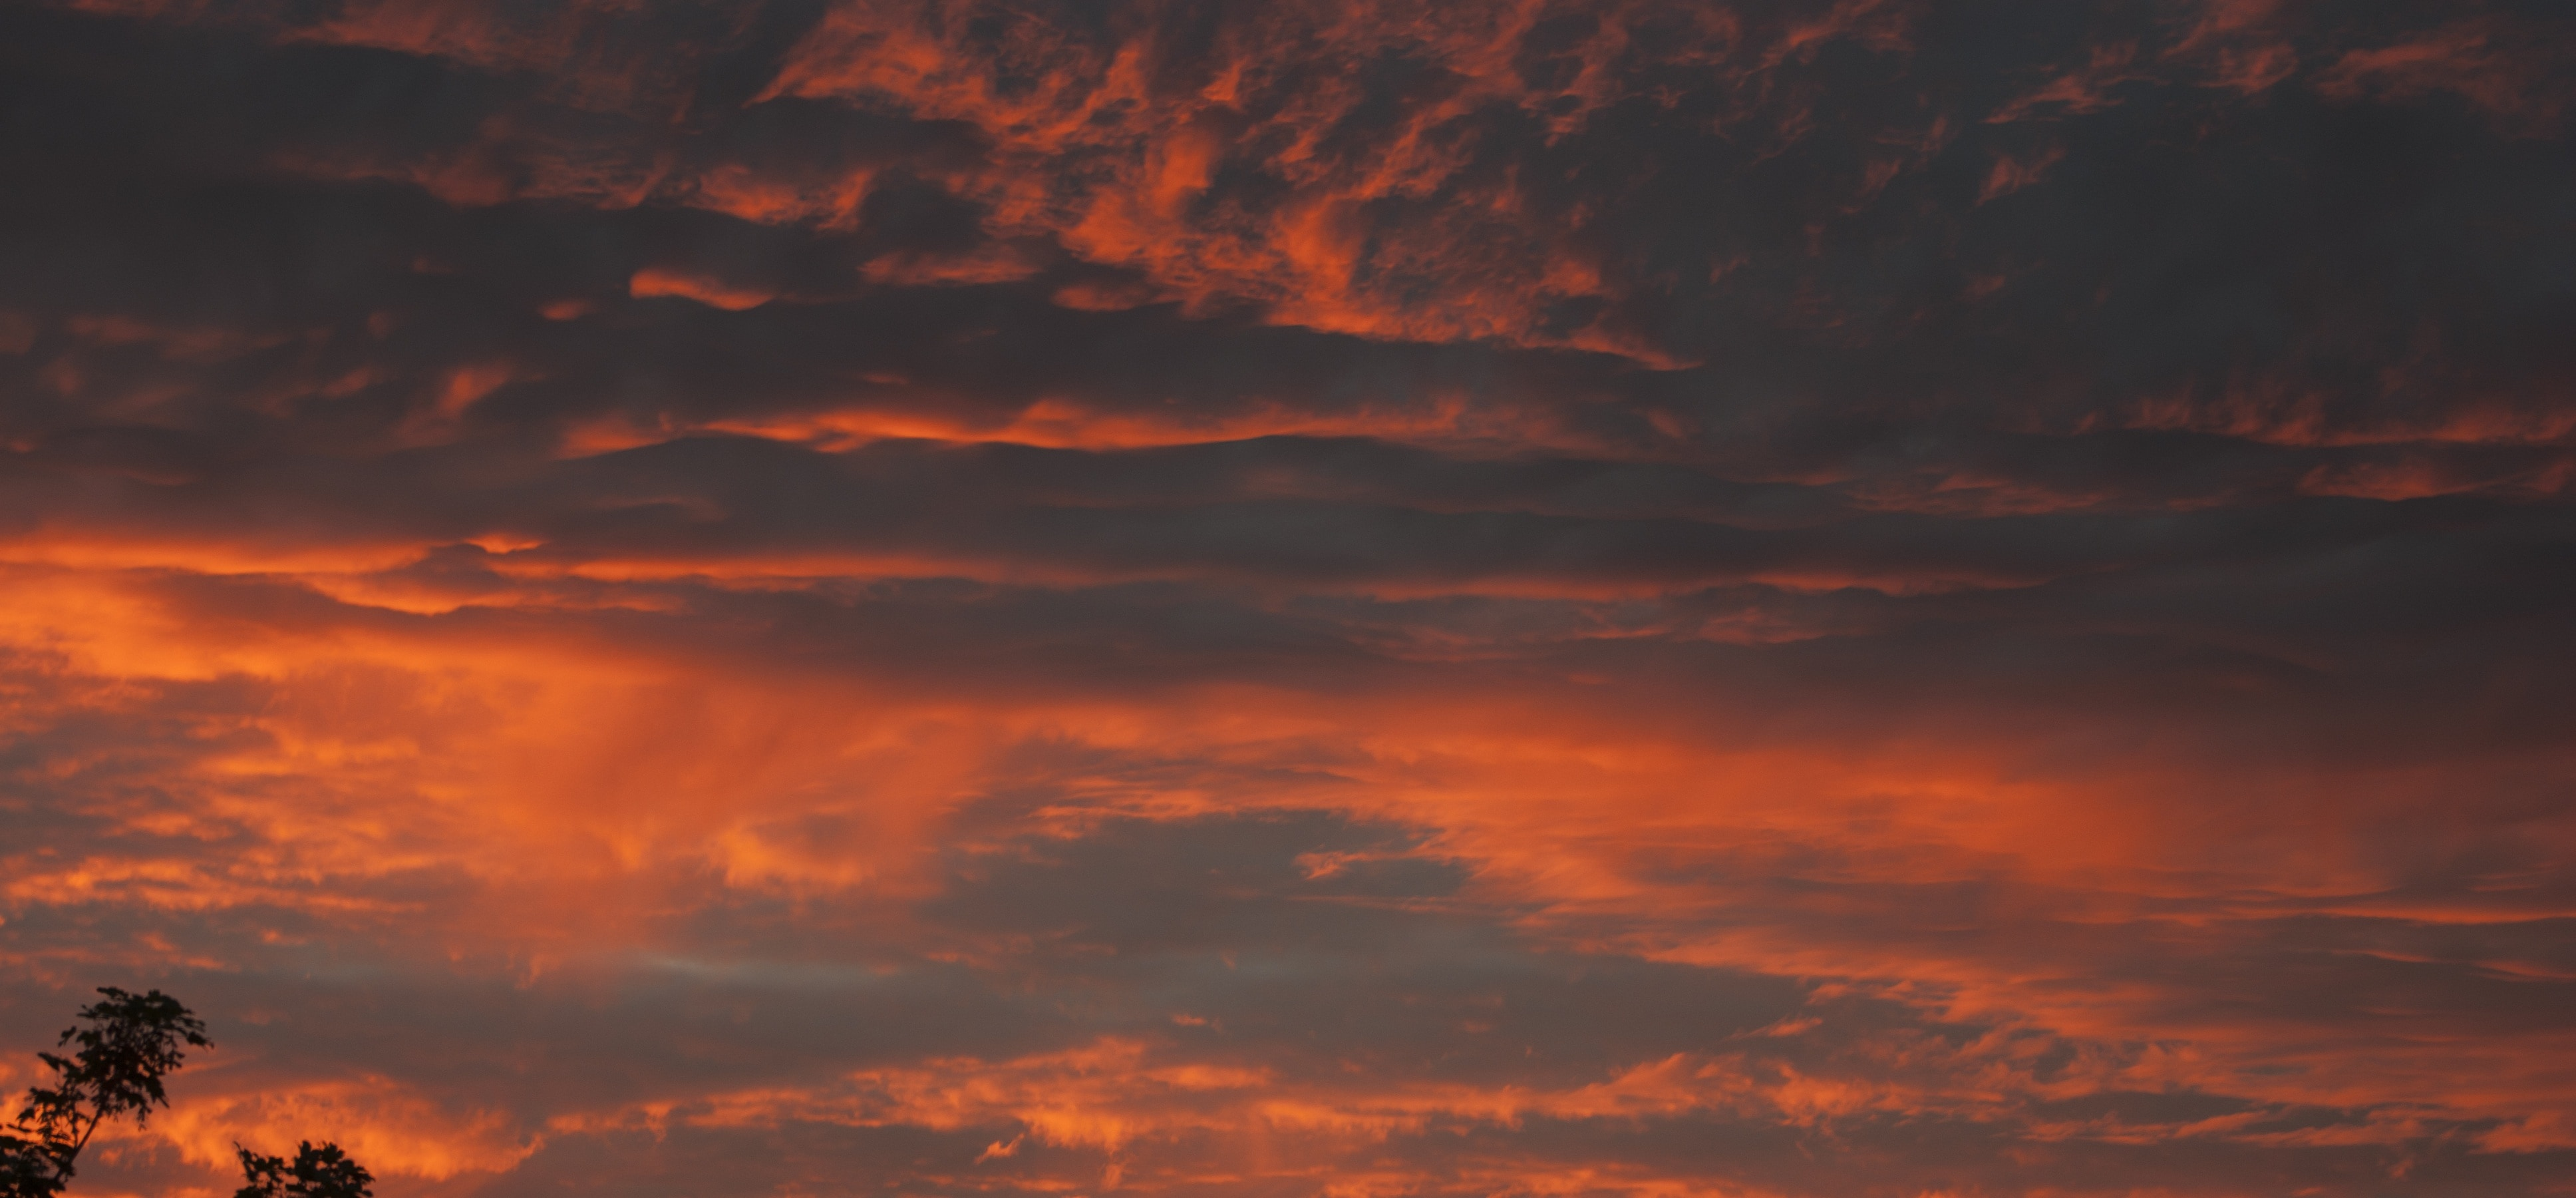 Hd Wallpaper Download Website Gray And Orange Cloudy Dark Sky Free Image Peakpx